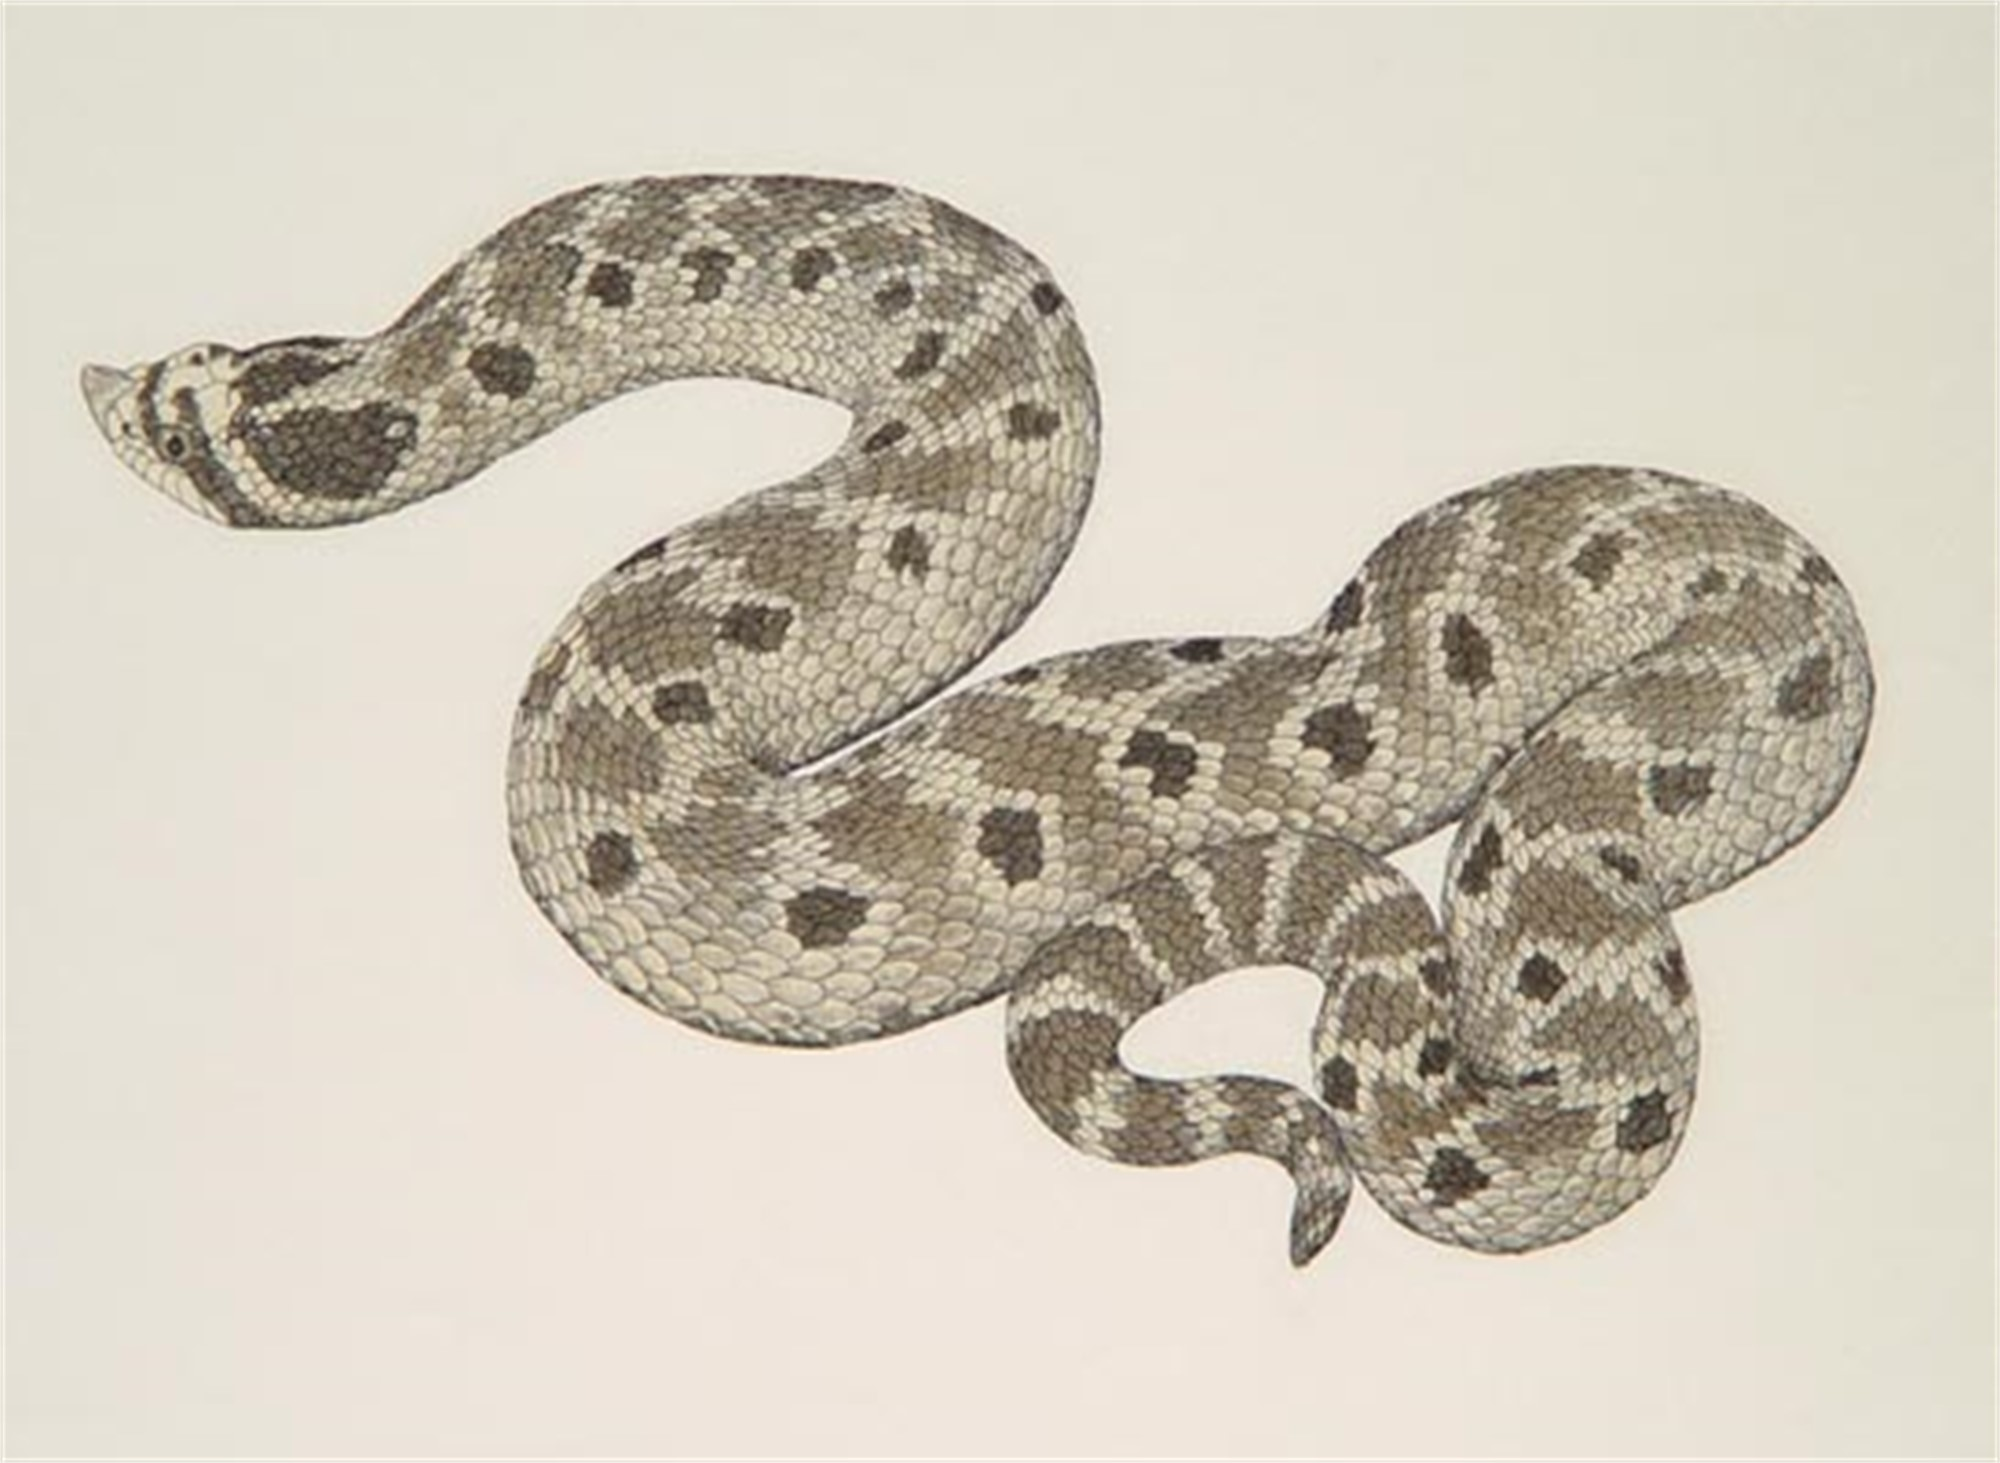 Mexican Hognose Snake by William Montgomery